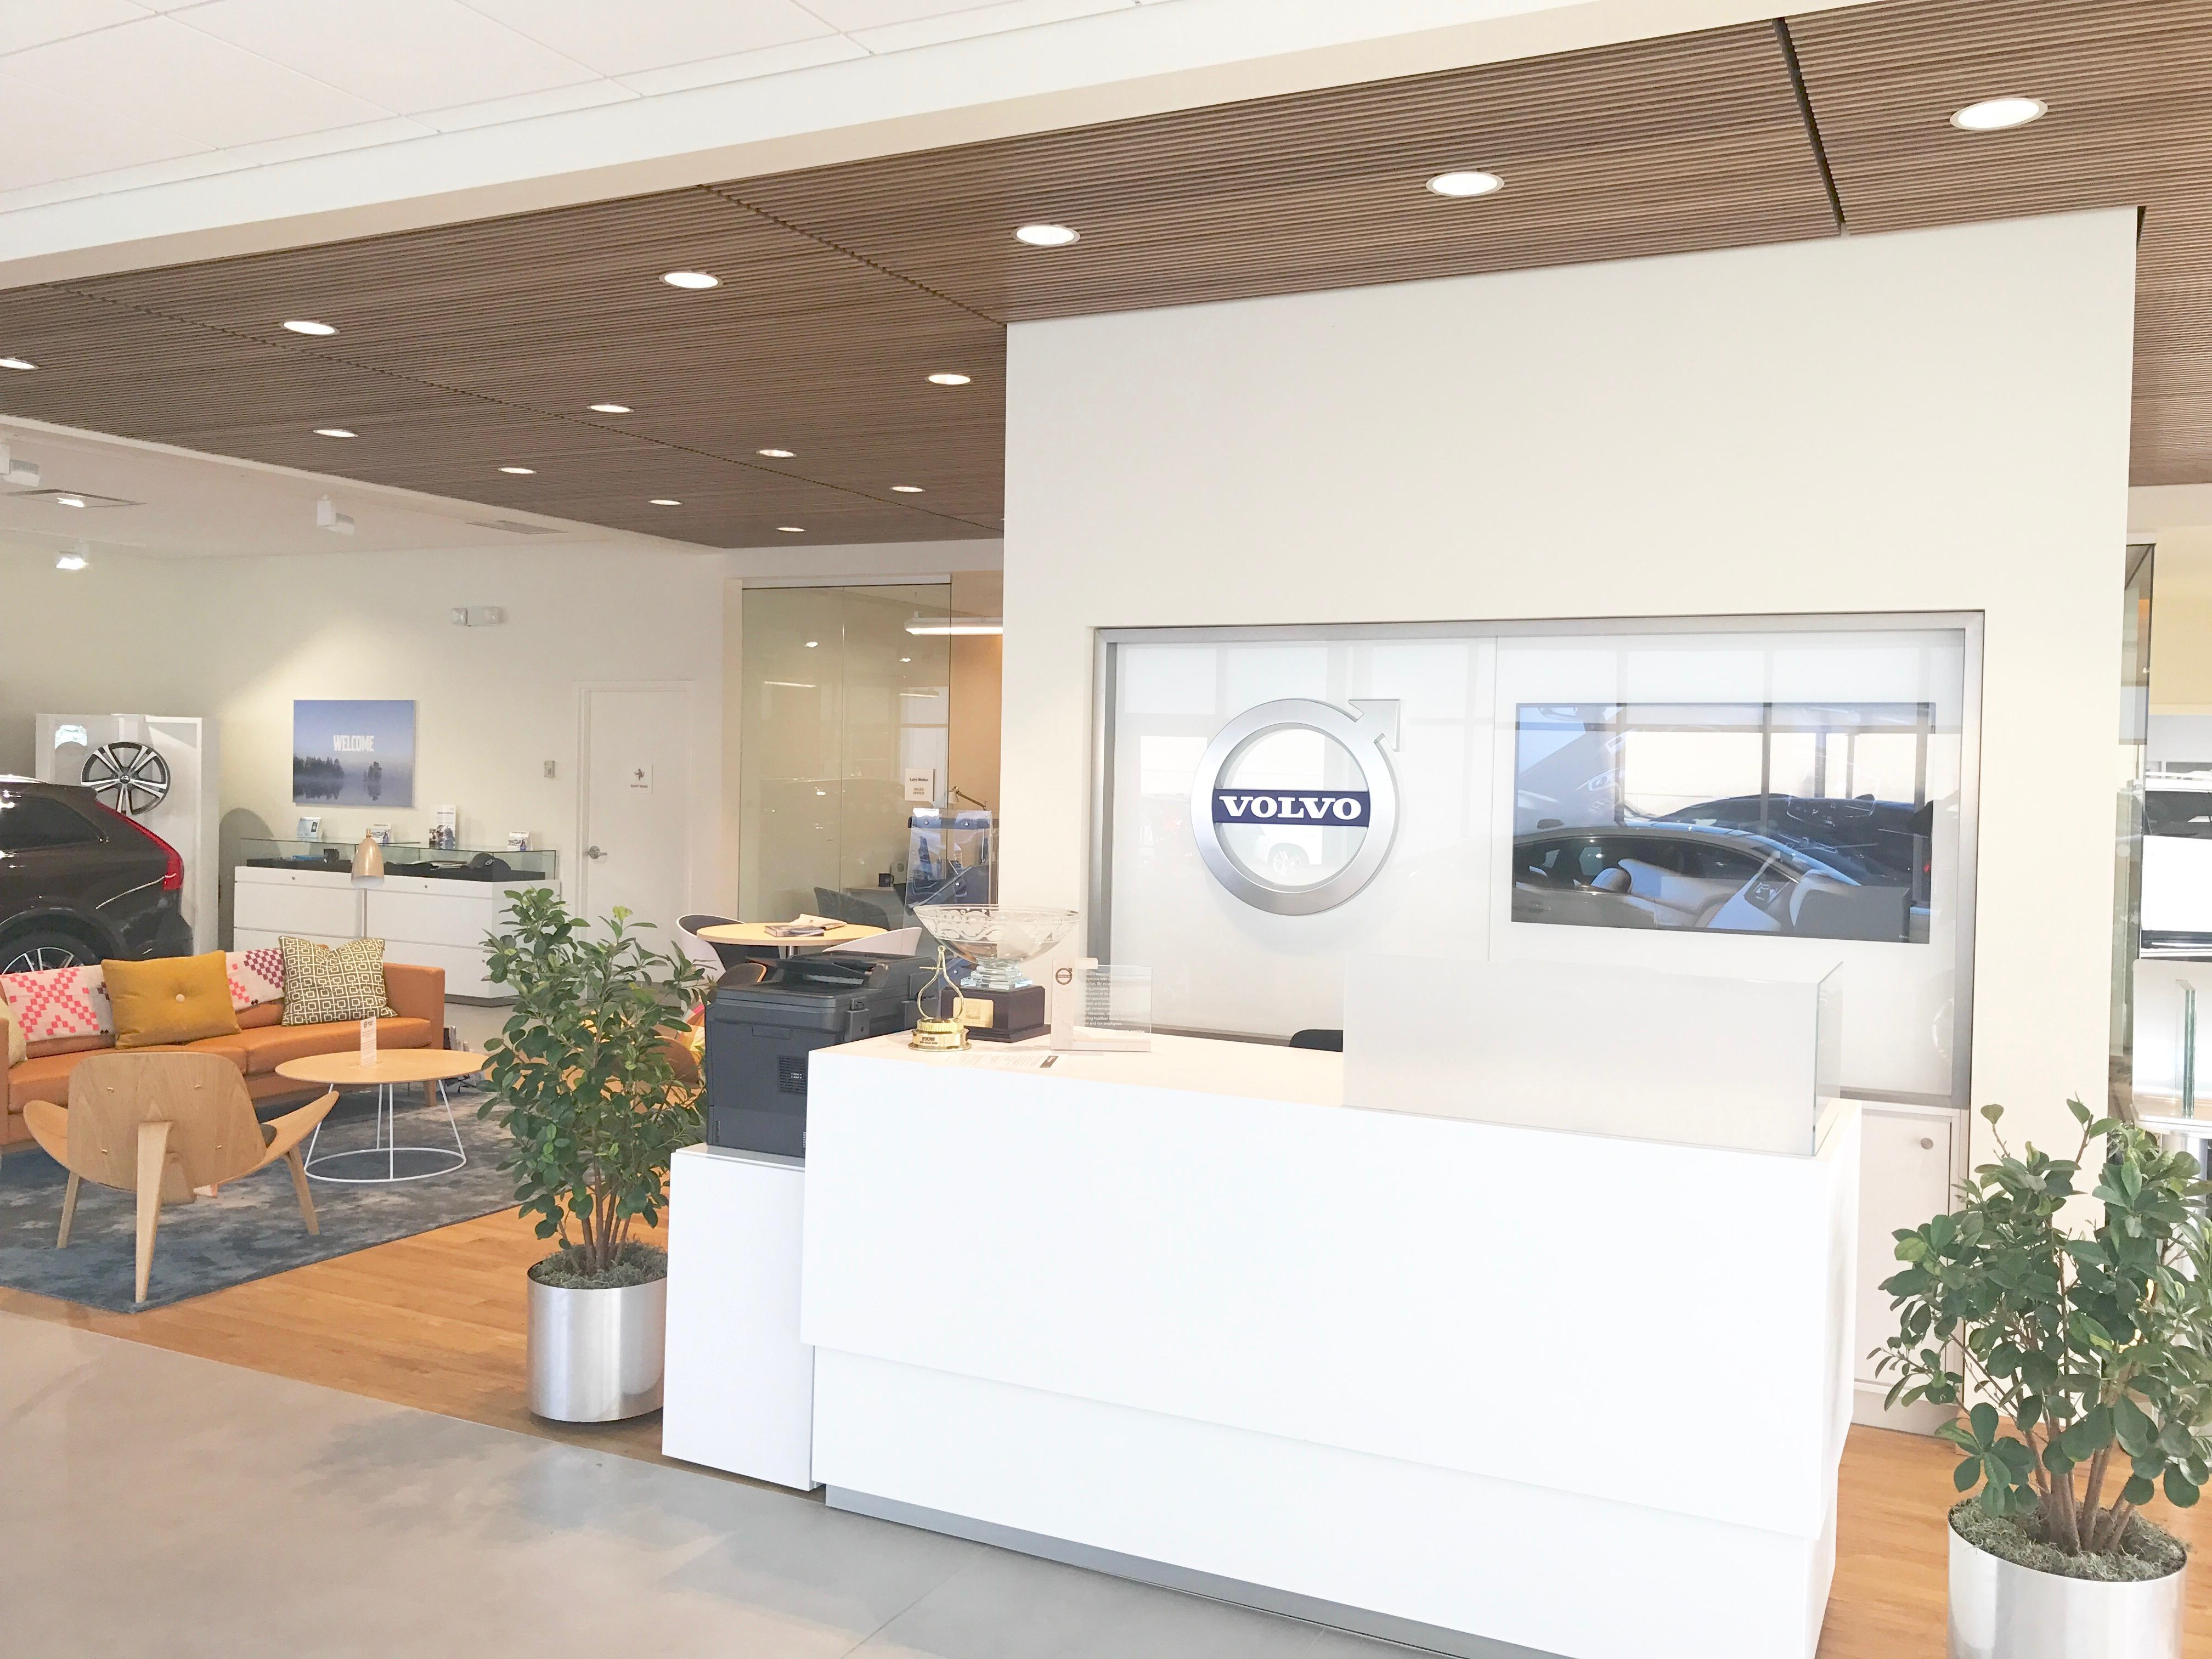 Leikin volvo cars cleveland in willoughby oh whitepages for Leikin mercedes benz